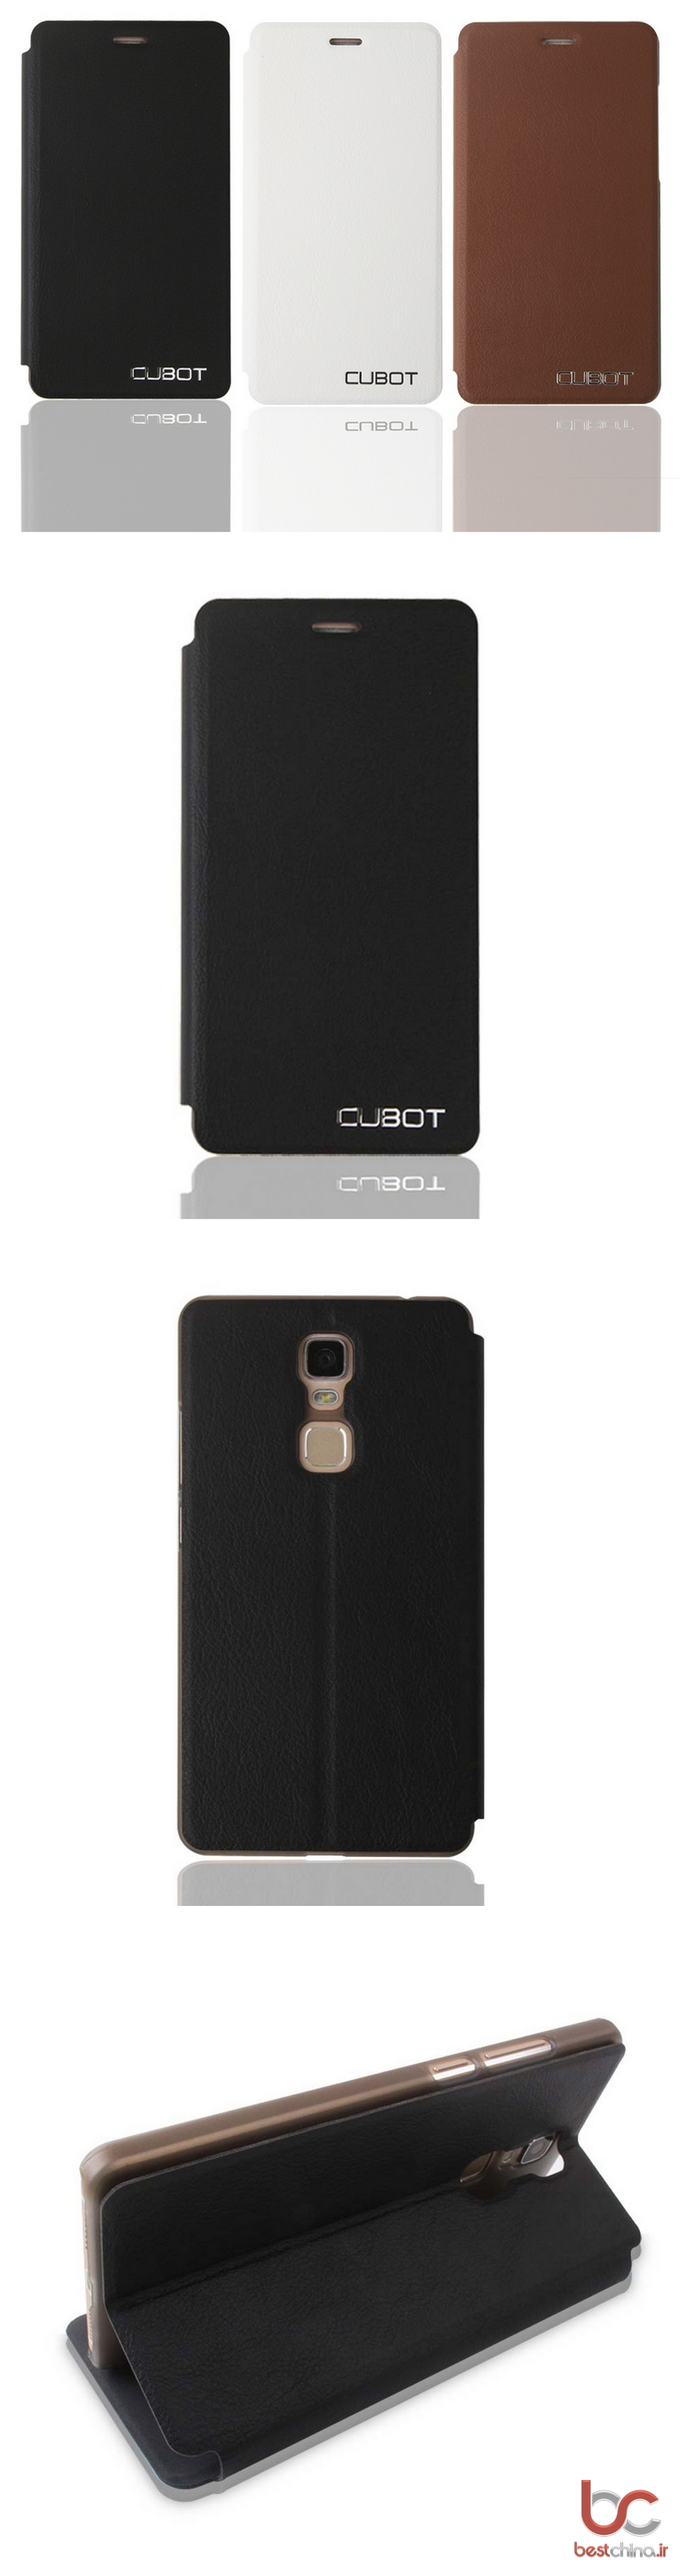 cubot-cheetah-flip-cover-1